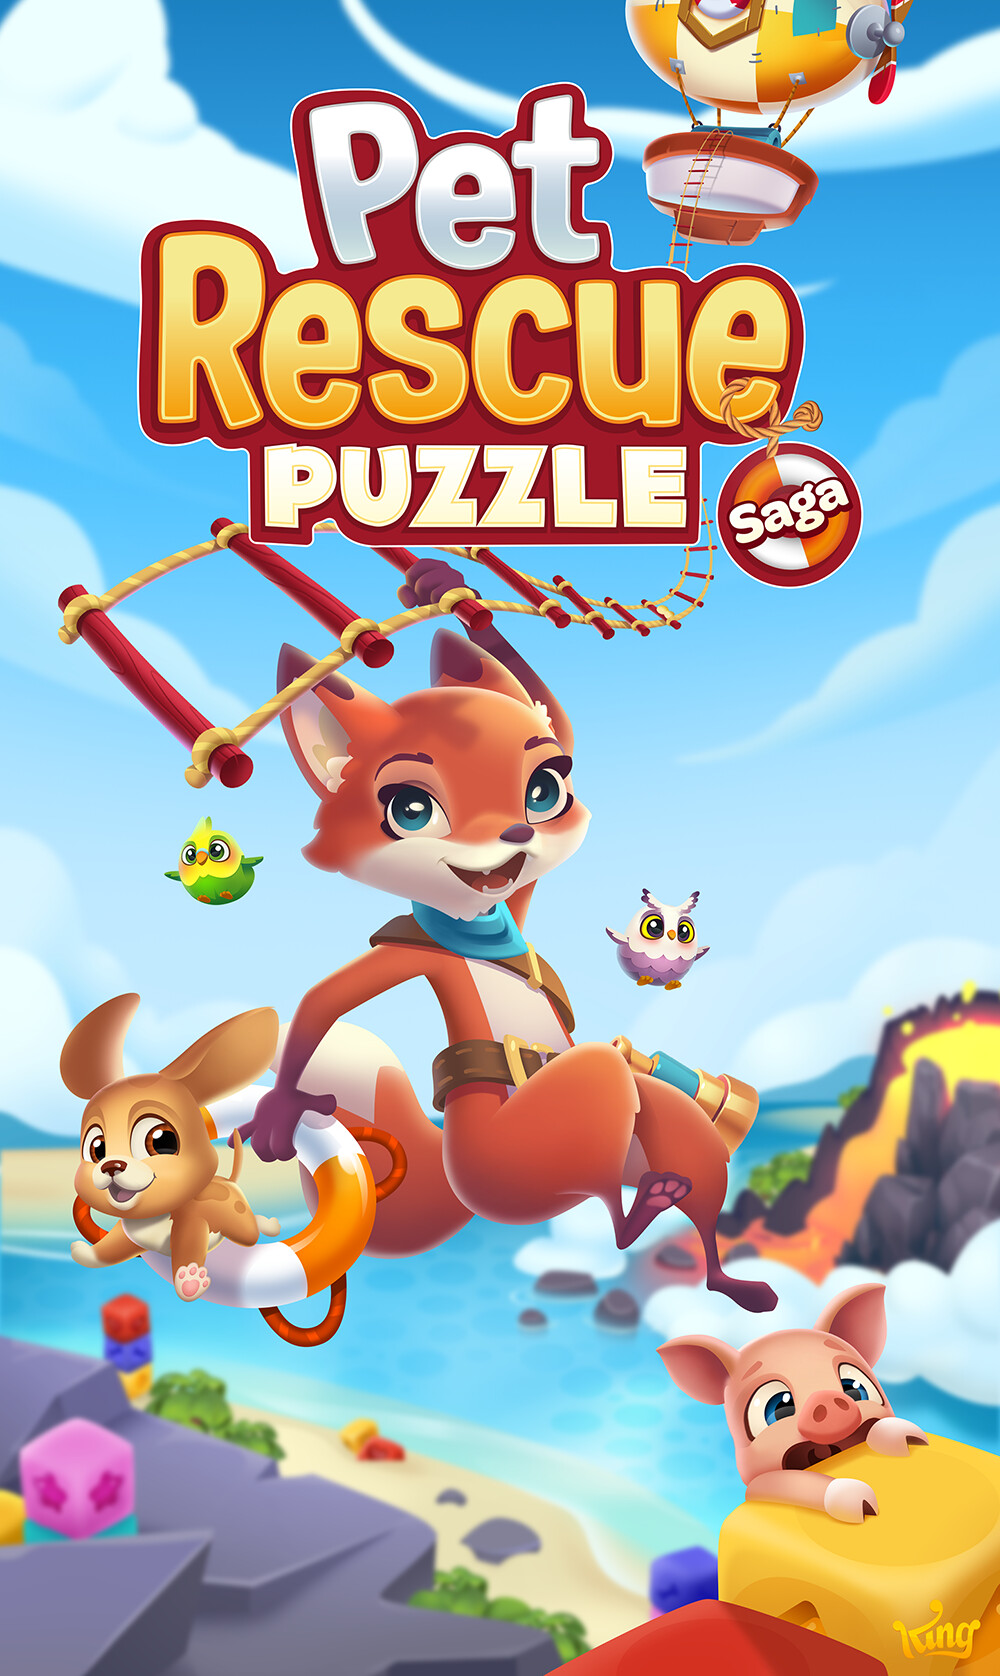 Artstation Pet Rescue Puzzle Saga Content Creation And Art Direction Elin Andersson In 2020 Animal Rescue Pet Rescue Saga Pets